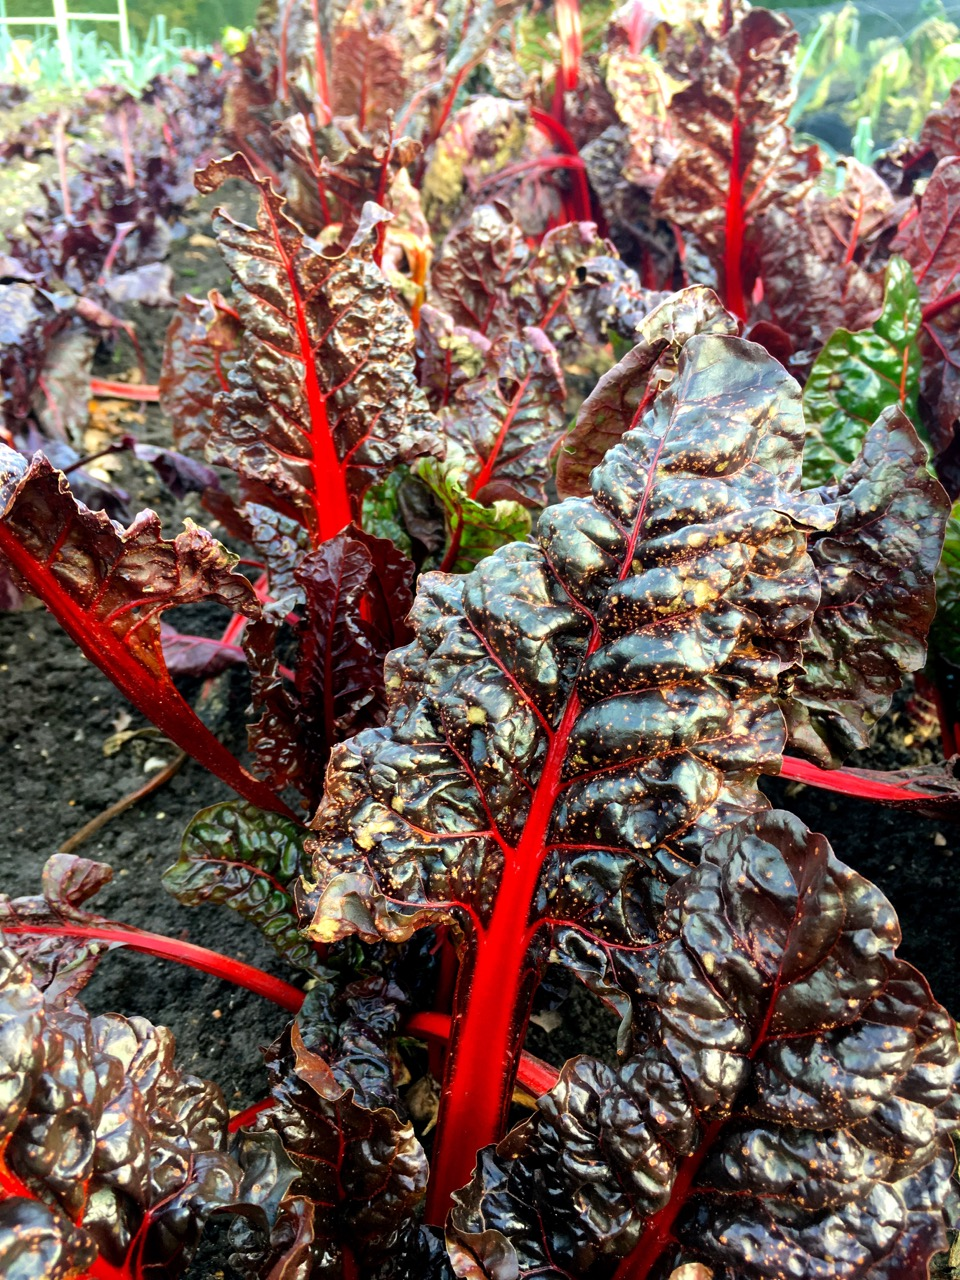 Ruby chard in the vegetable garden at RHS Wisley